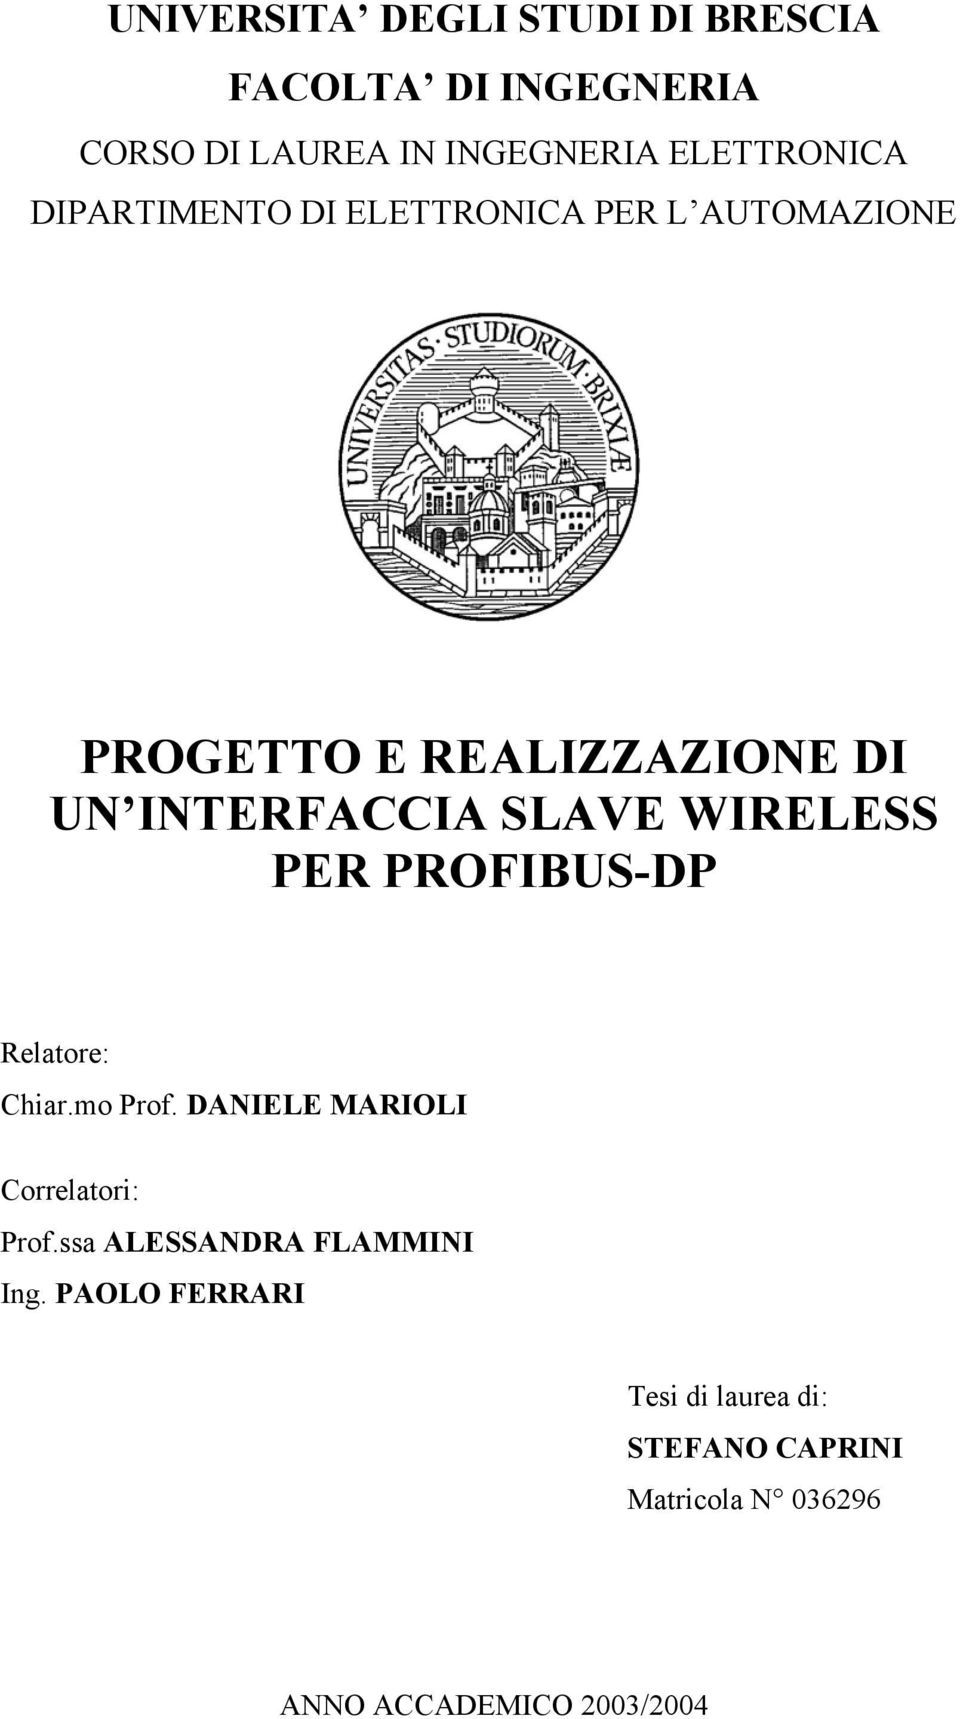 WIRELESS PER PROFIBUS-DP Relatore: Chiar.mo Prof. DANIELE MARIOLI Correlatori: Prof.